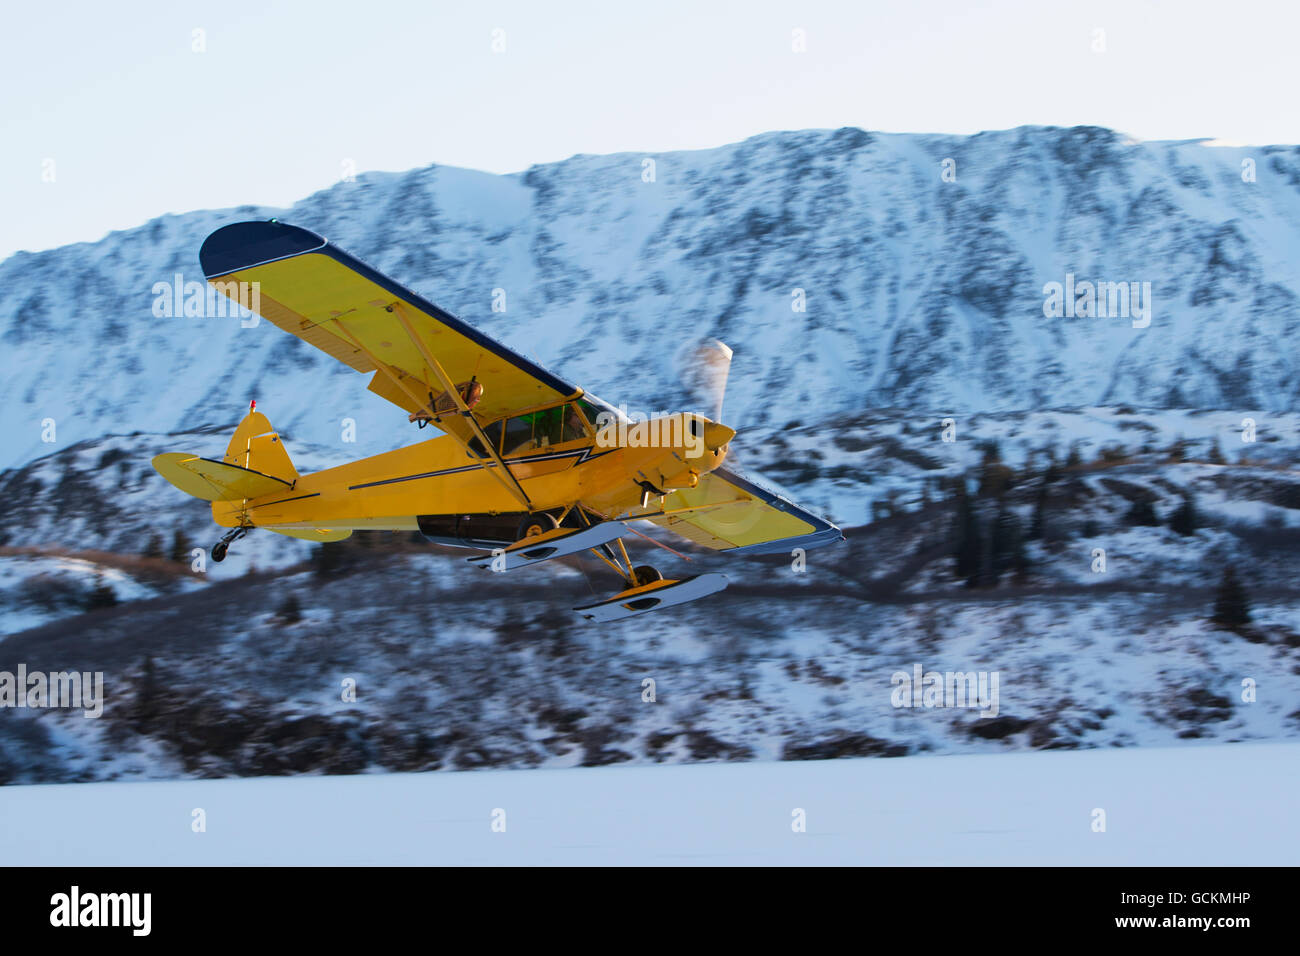 Piper PA-18 Super Cub on skis takes off with the Kenai Mountains in the background, Southcentral Alaska. - Stock Image